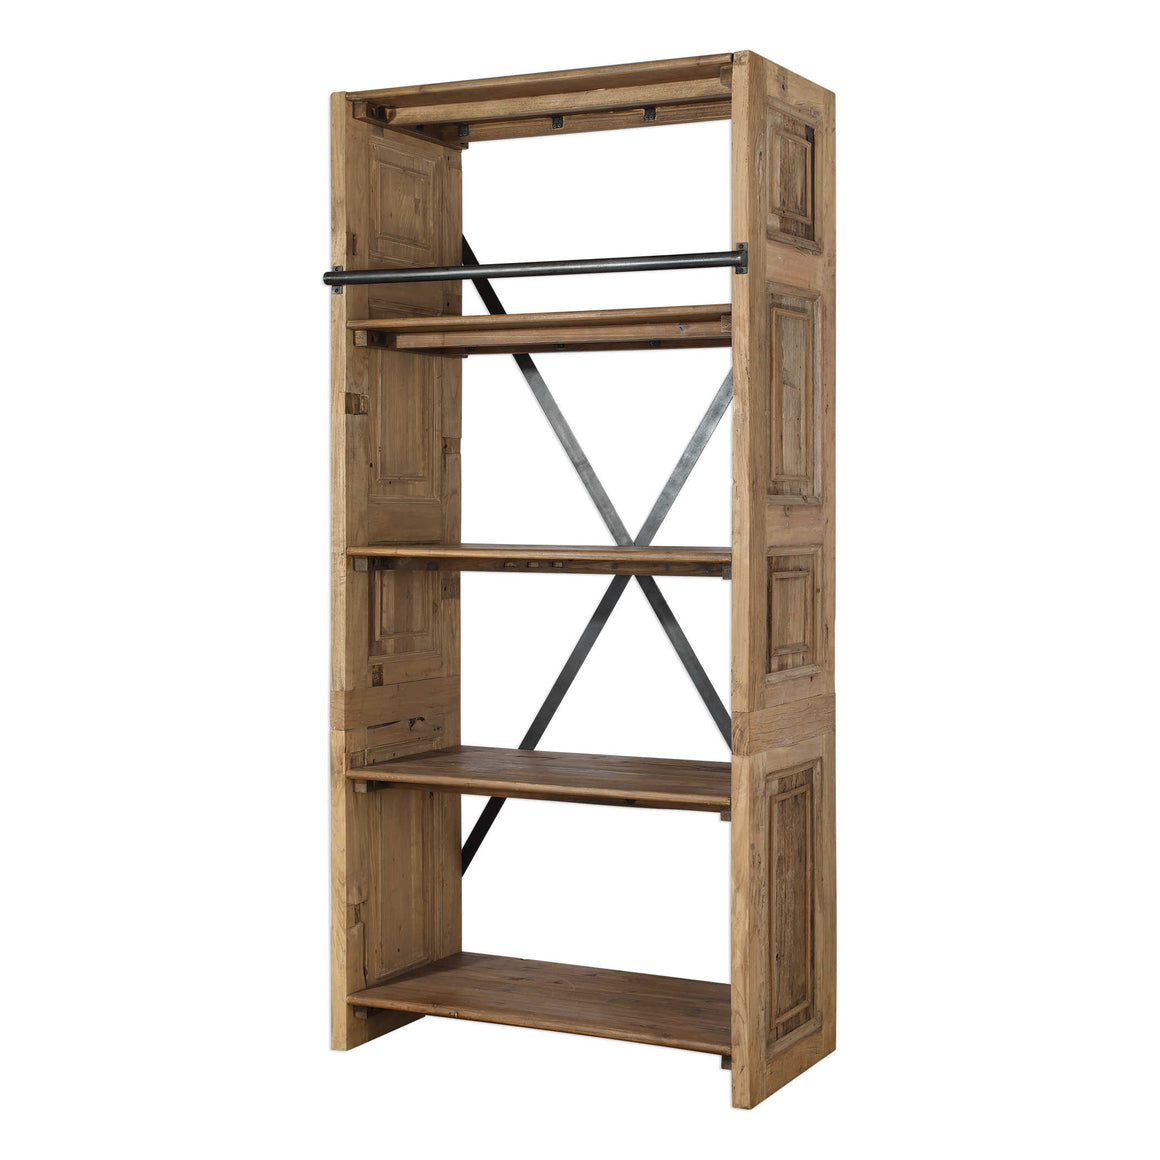 Bryce Salvaged Wood Etagere